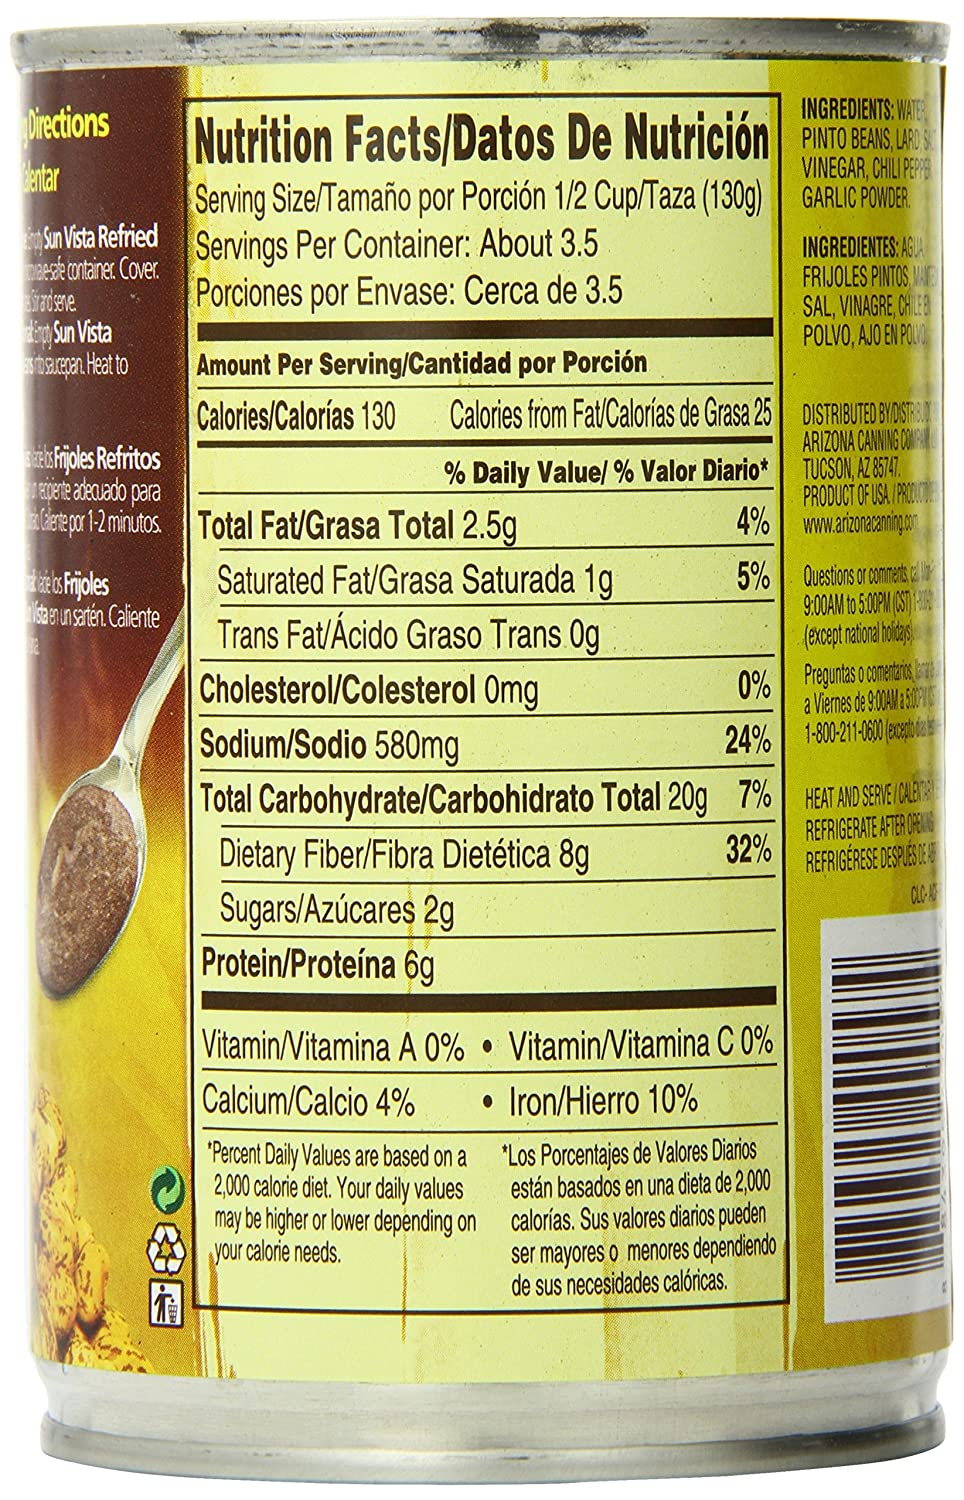 Amazon.com : Sun Vista Pinto Beans, Refried, 16 Ounce (Pack of 12) : Grocery & Gourmet Food